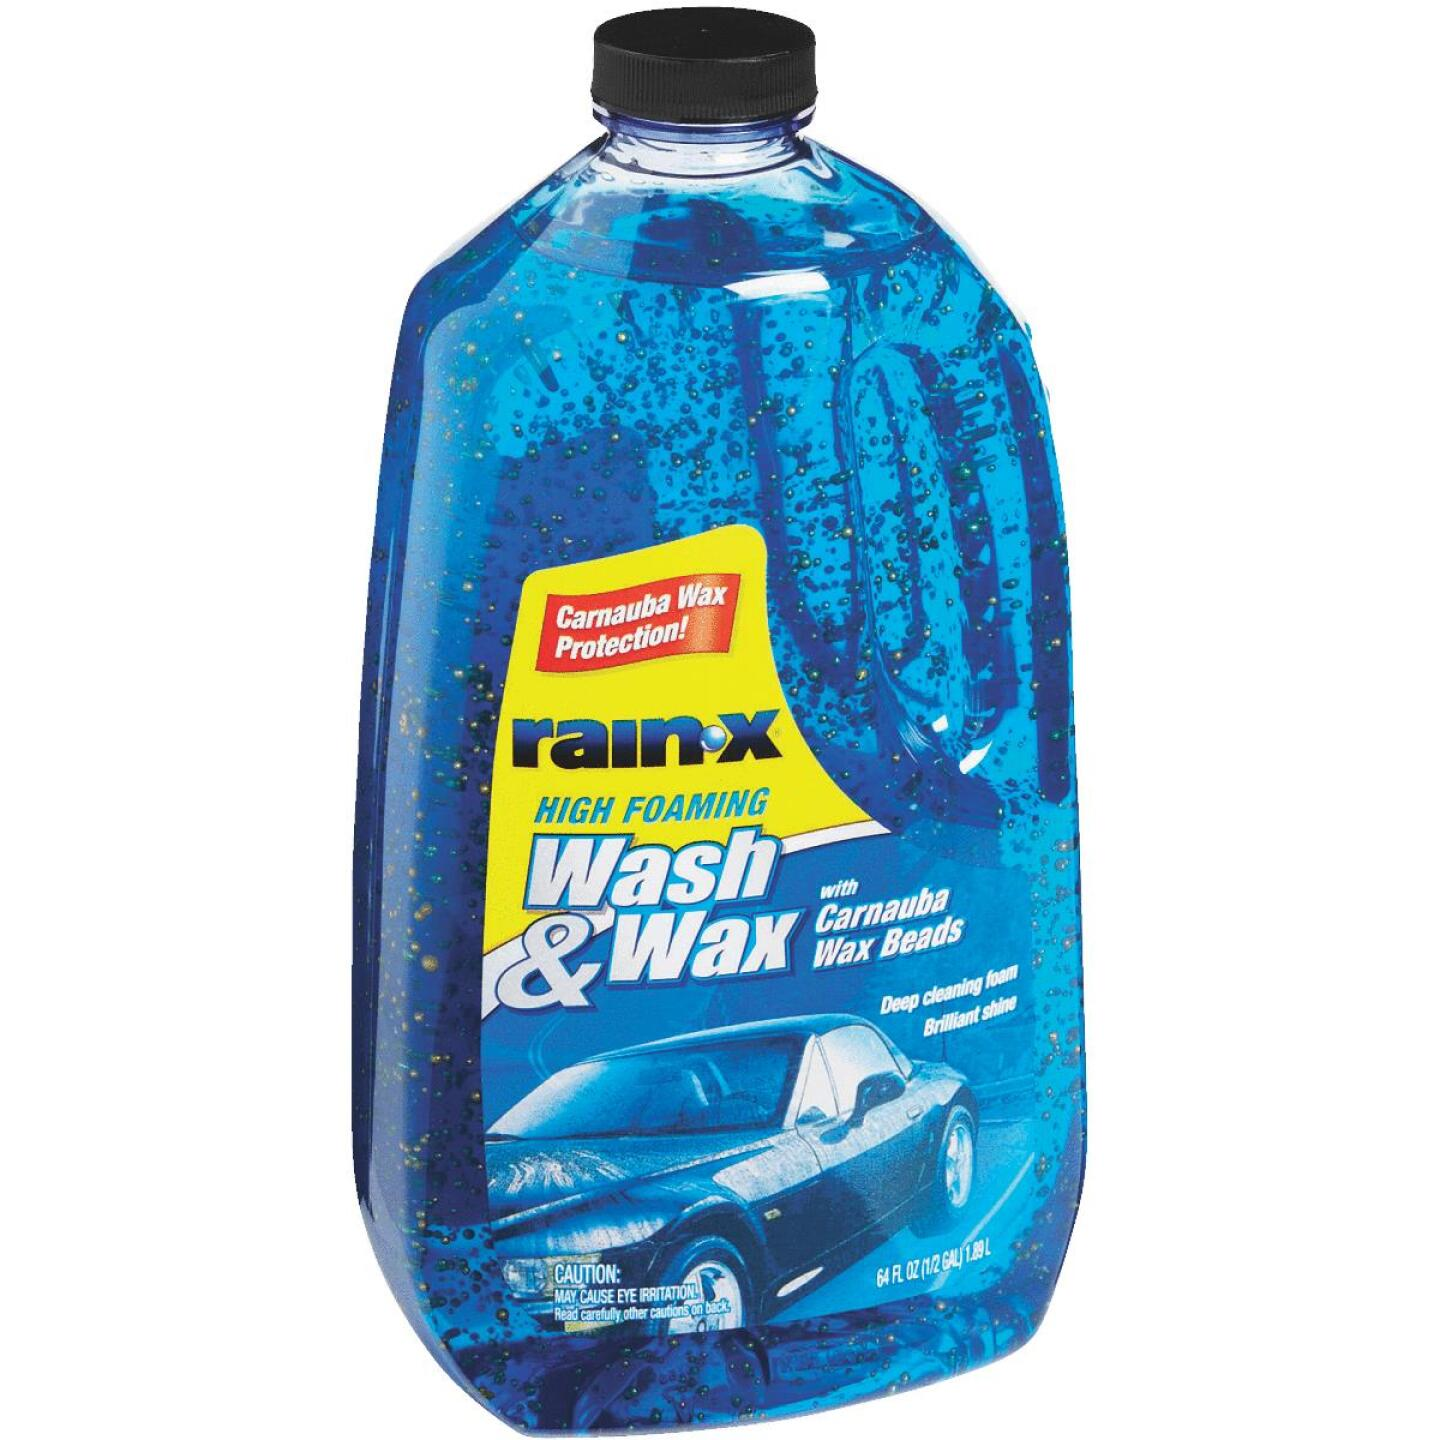 RAIN-X 64 Oz. Liquid High Foaming Car Wash & Wax w/Carnauba Wax Image 2